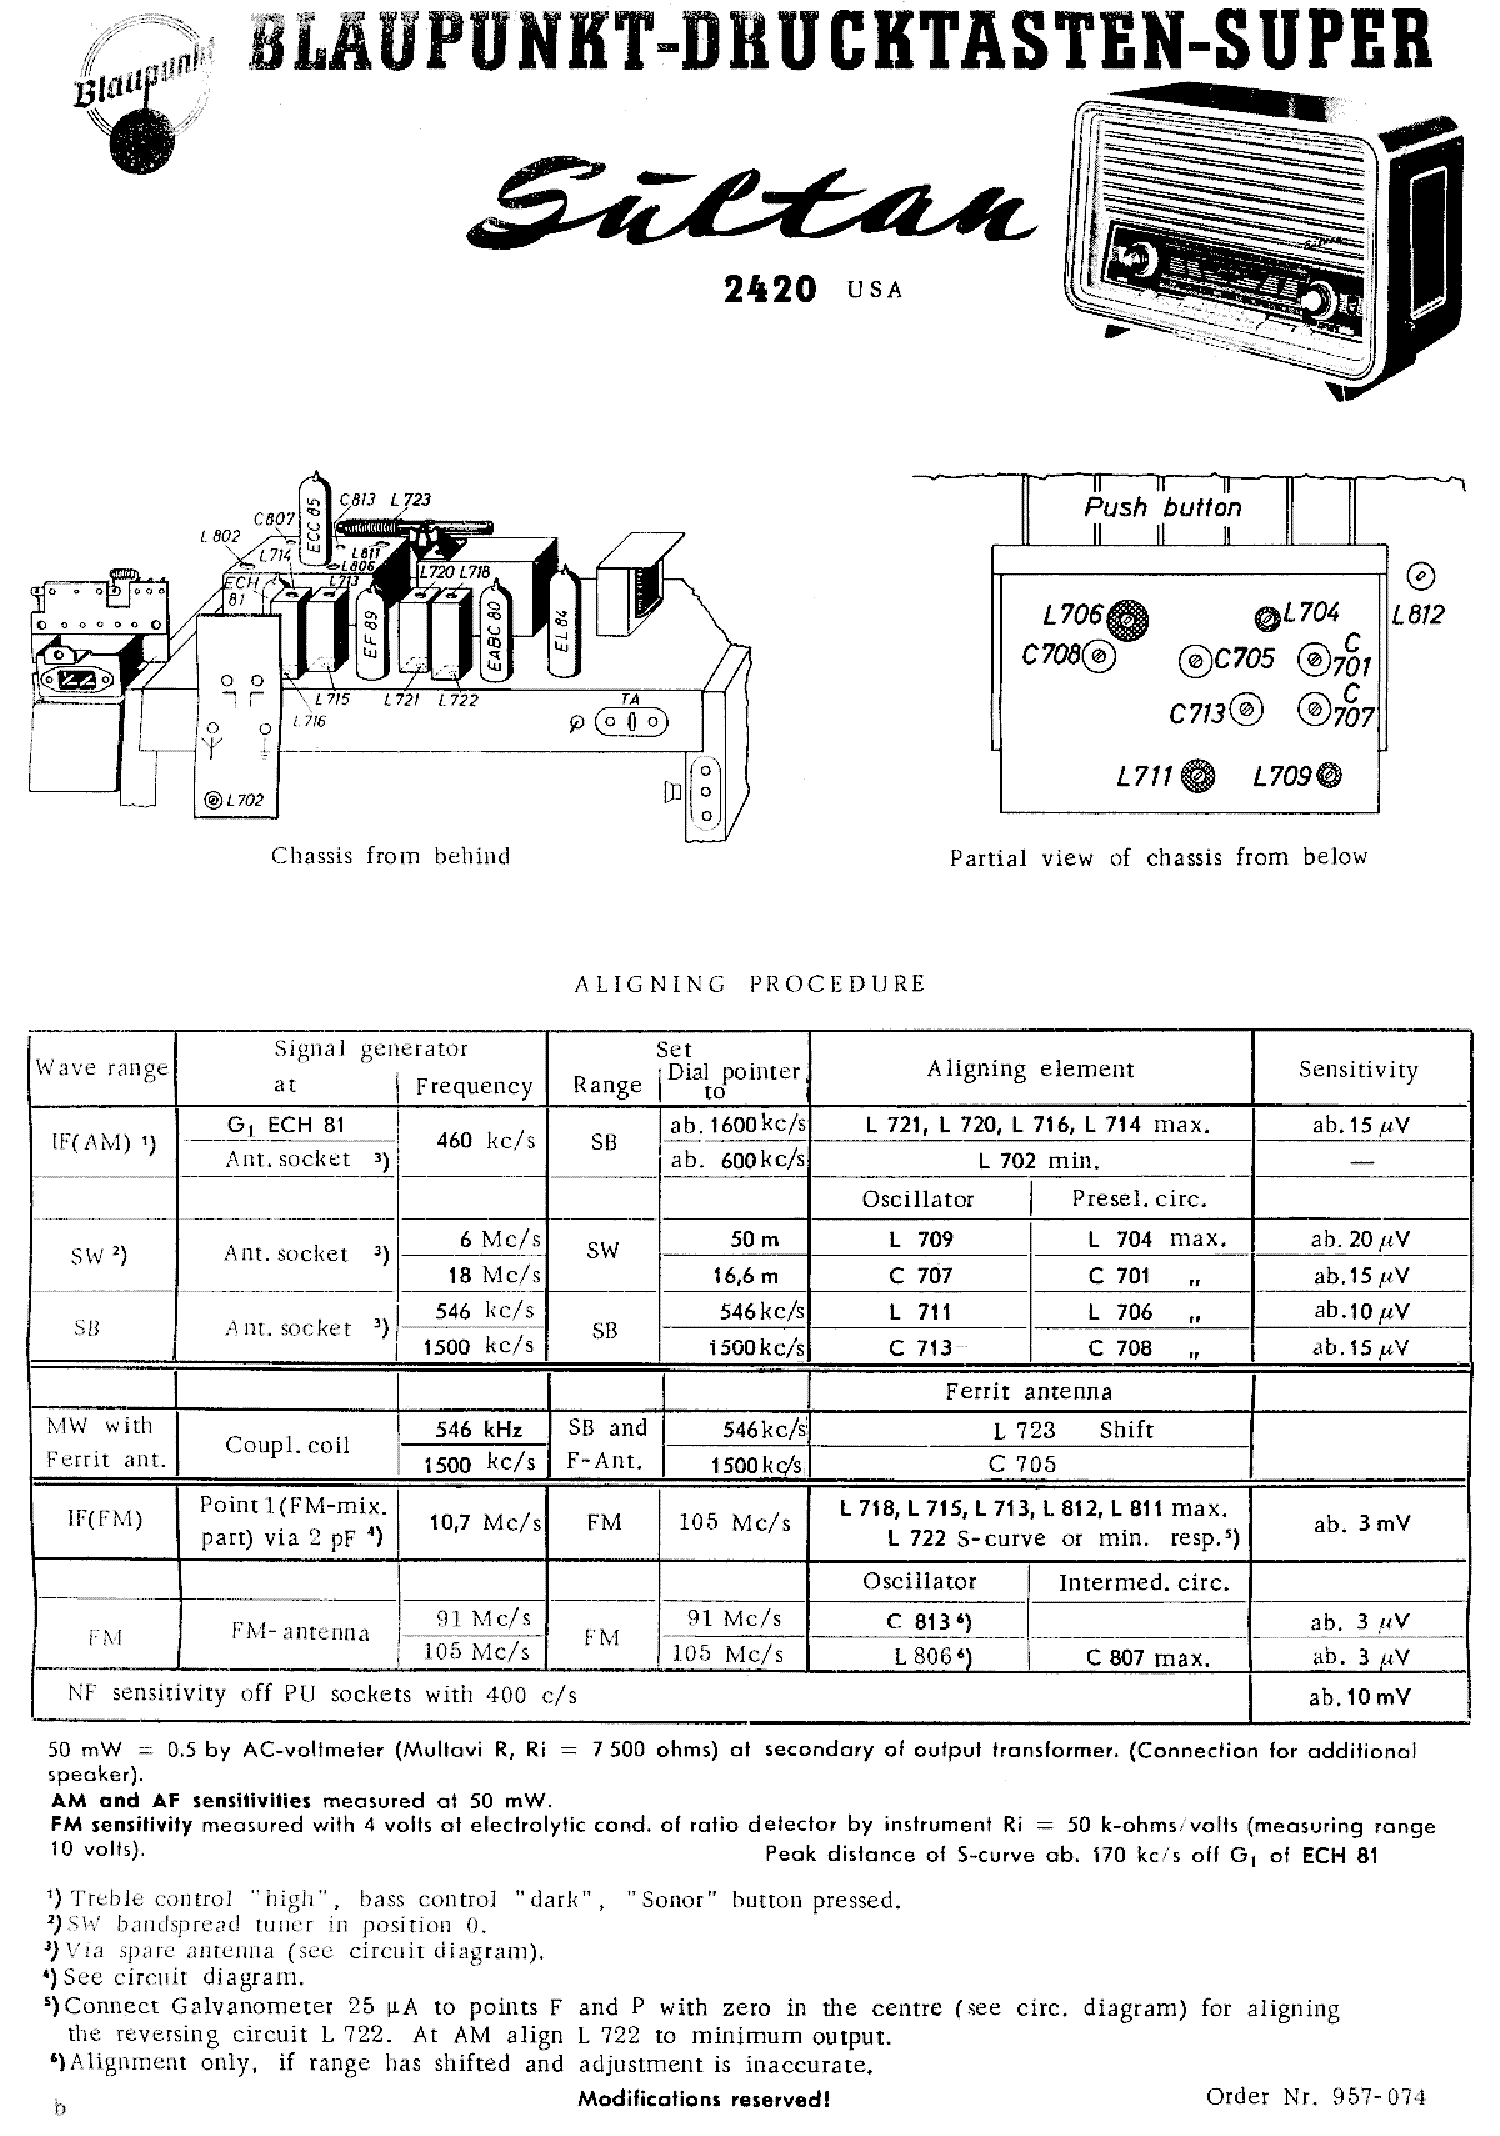 BLAUPUNKT SULTAN 2420 USA RADIO SM Service Manual download